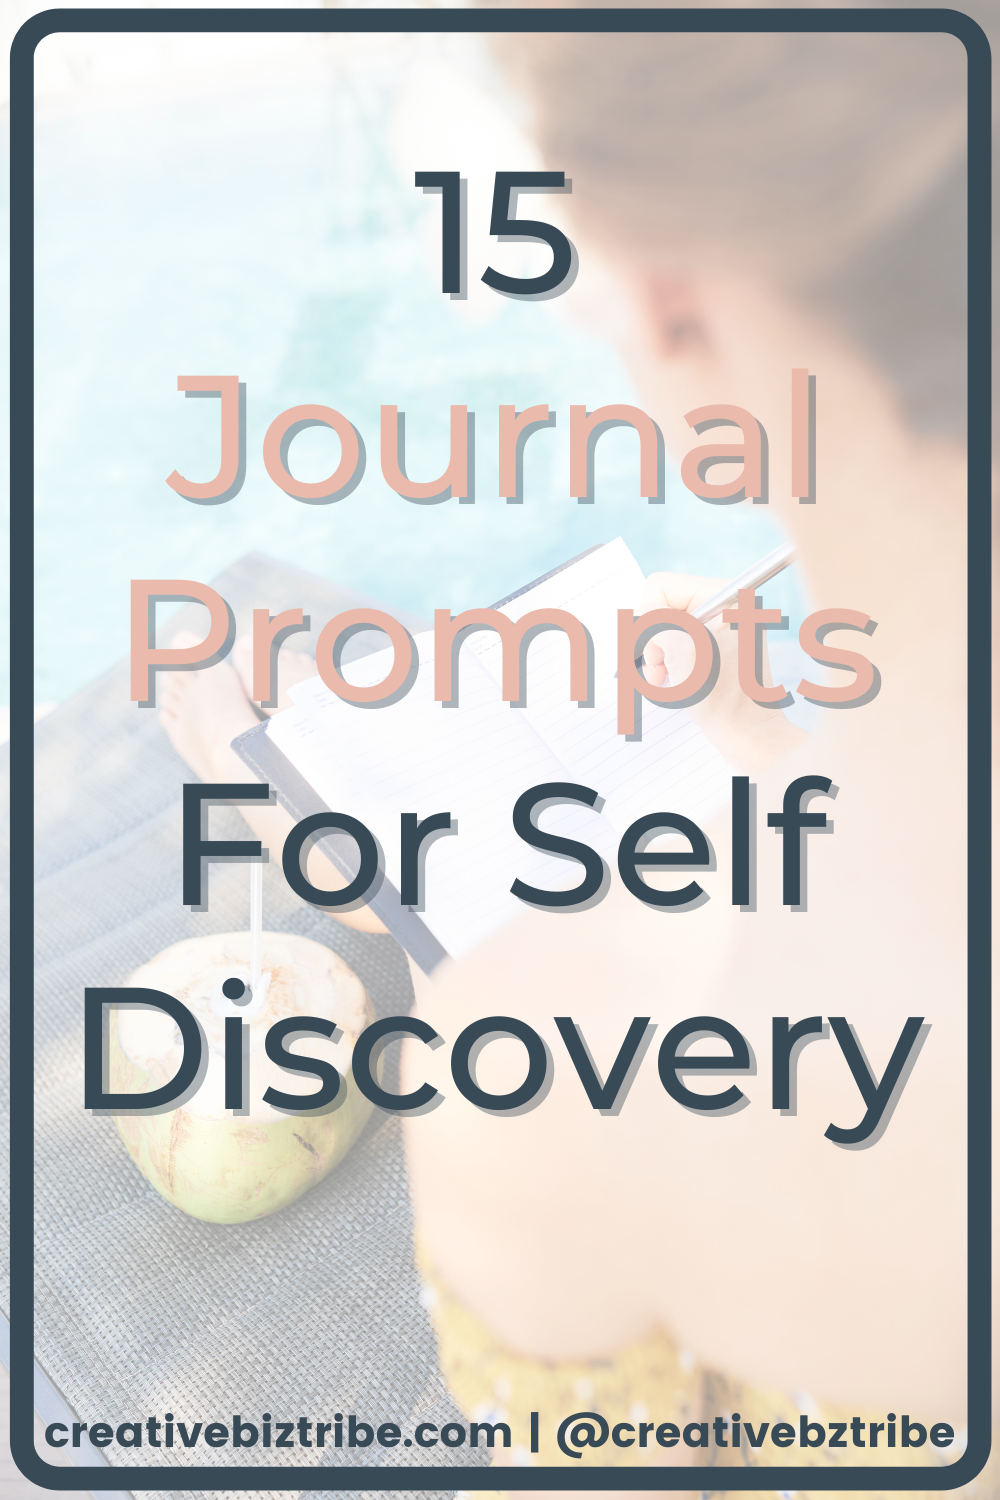 15 Journal Prompts for Self Discovery creativebiztribe.com #journal #journalprompt #selfdiscovery